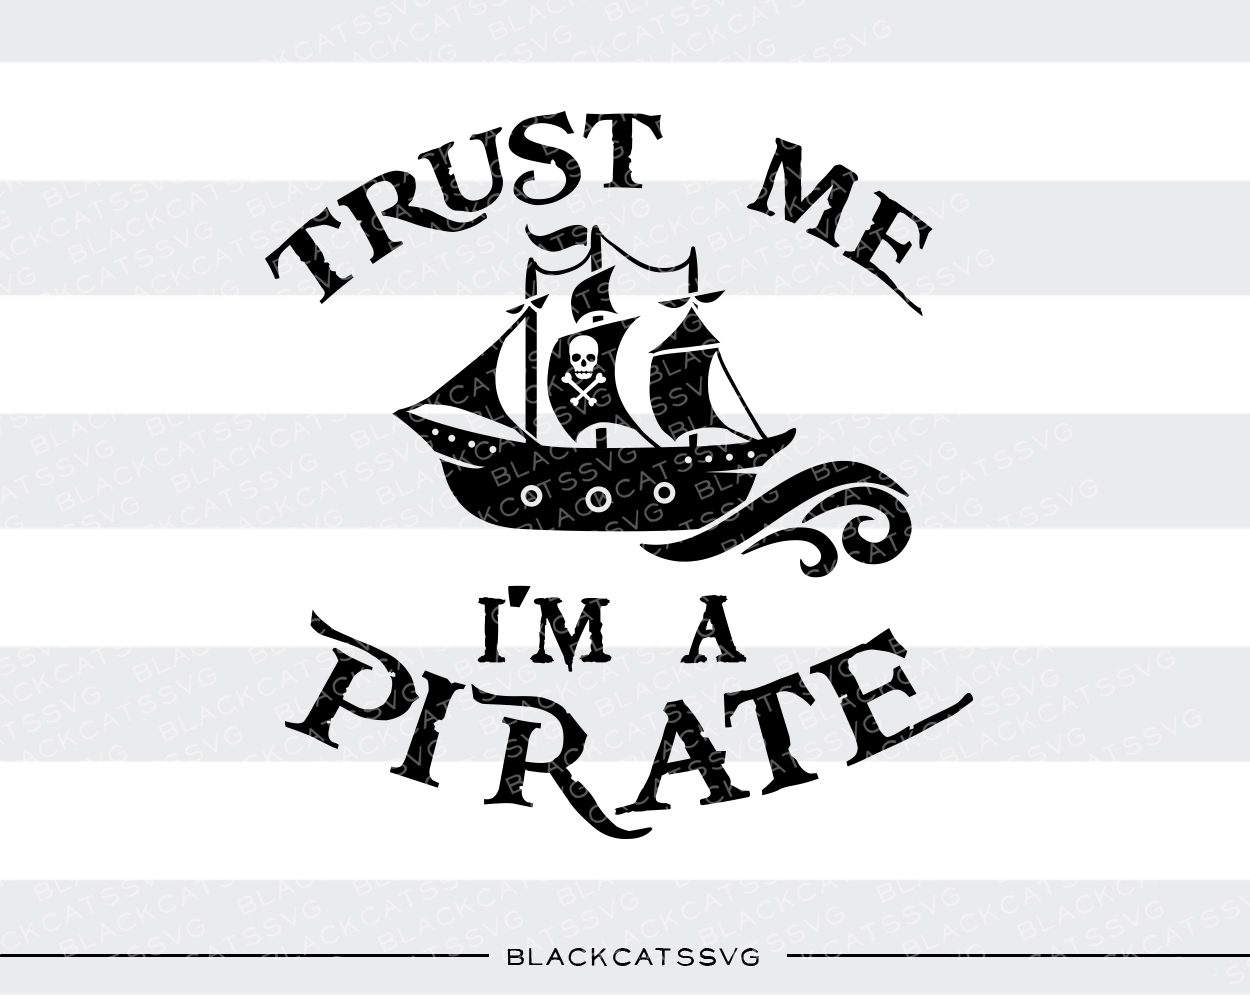 Download Free Trust Me I M A Pirate Svg Cut File By Blackcatssvg Creative for Cricut Explore, Silhouette and other cutting machines.